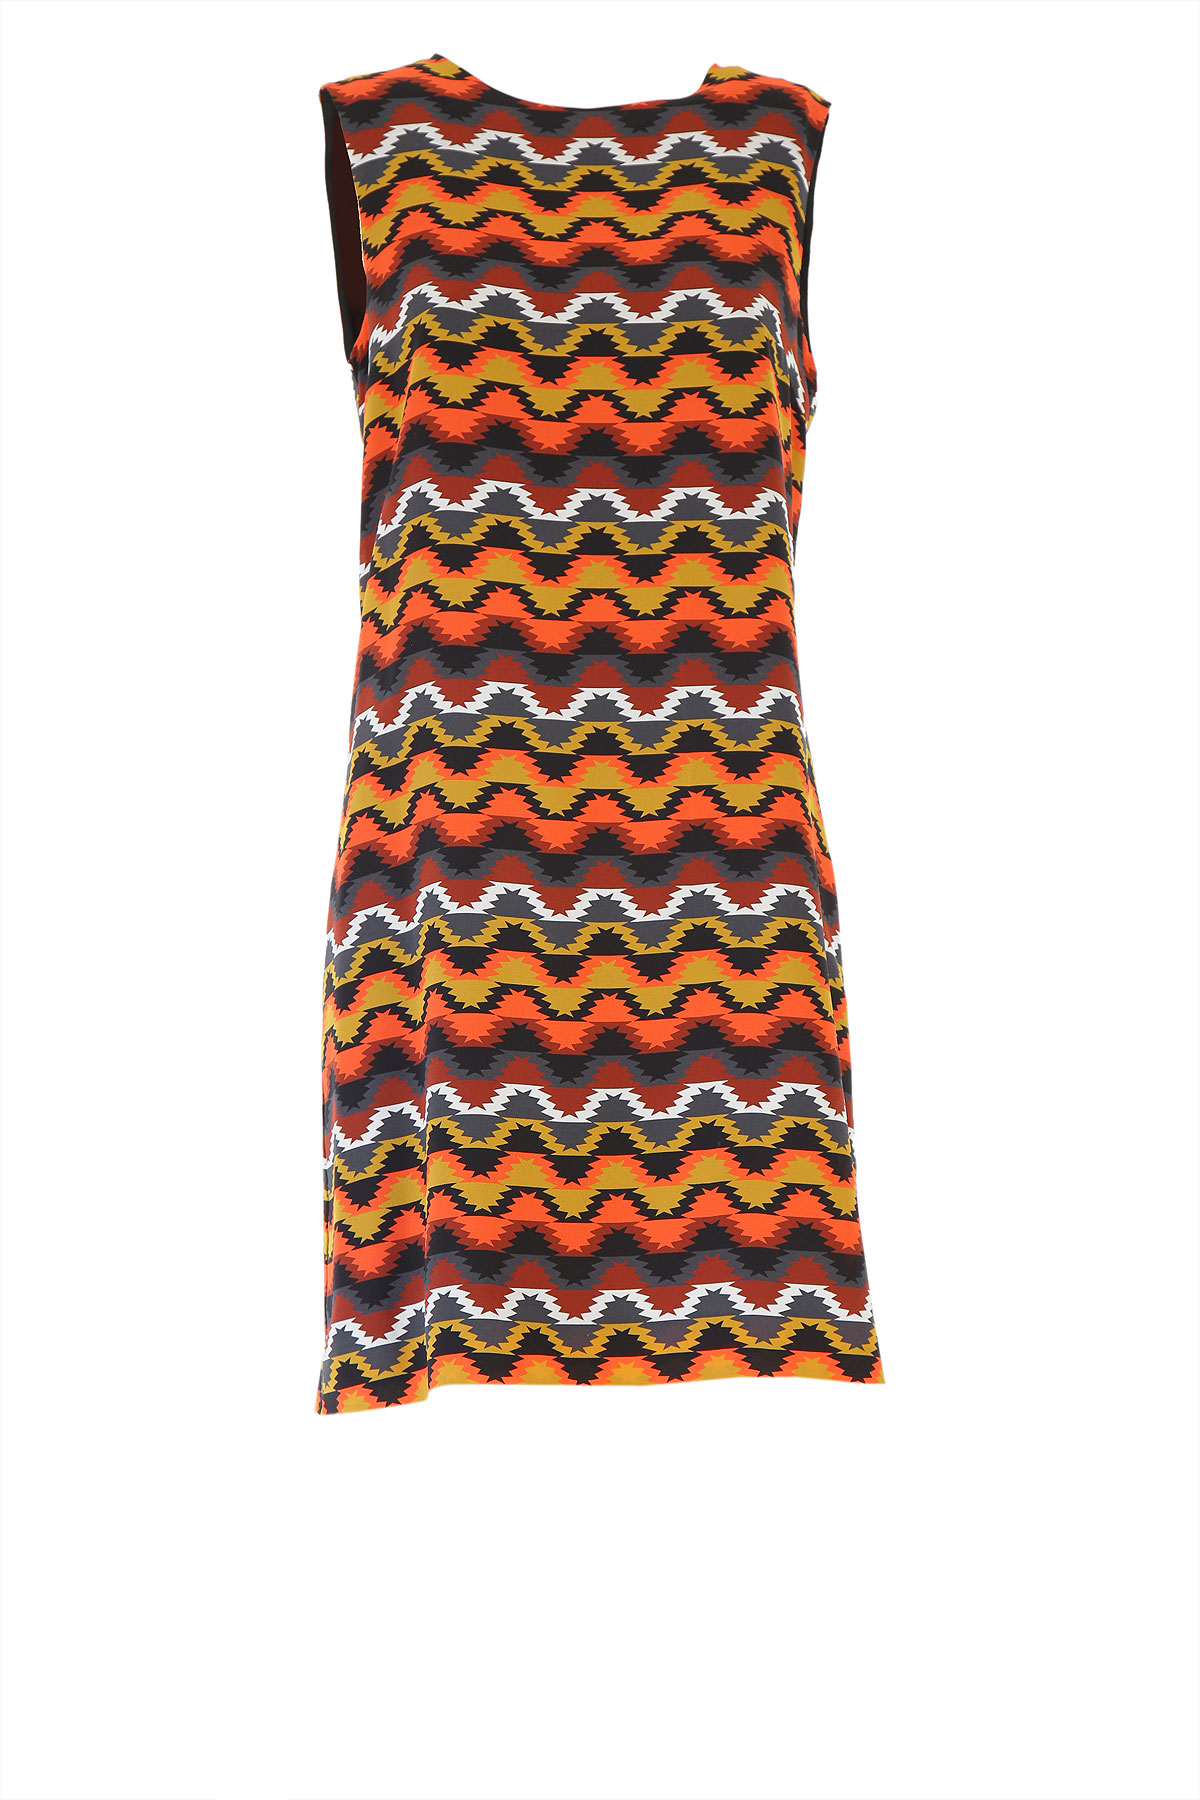 Missoni Dress for Women, Evening Cocktail Party On Sale, Multicolor, Silk, 2019, 10 8